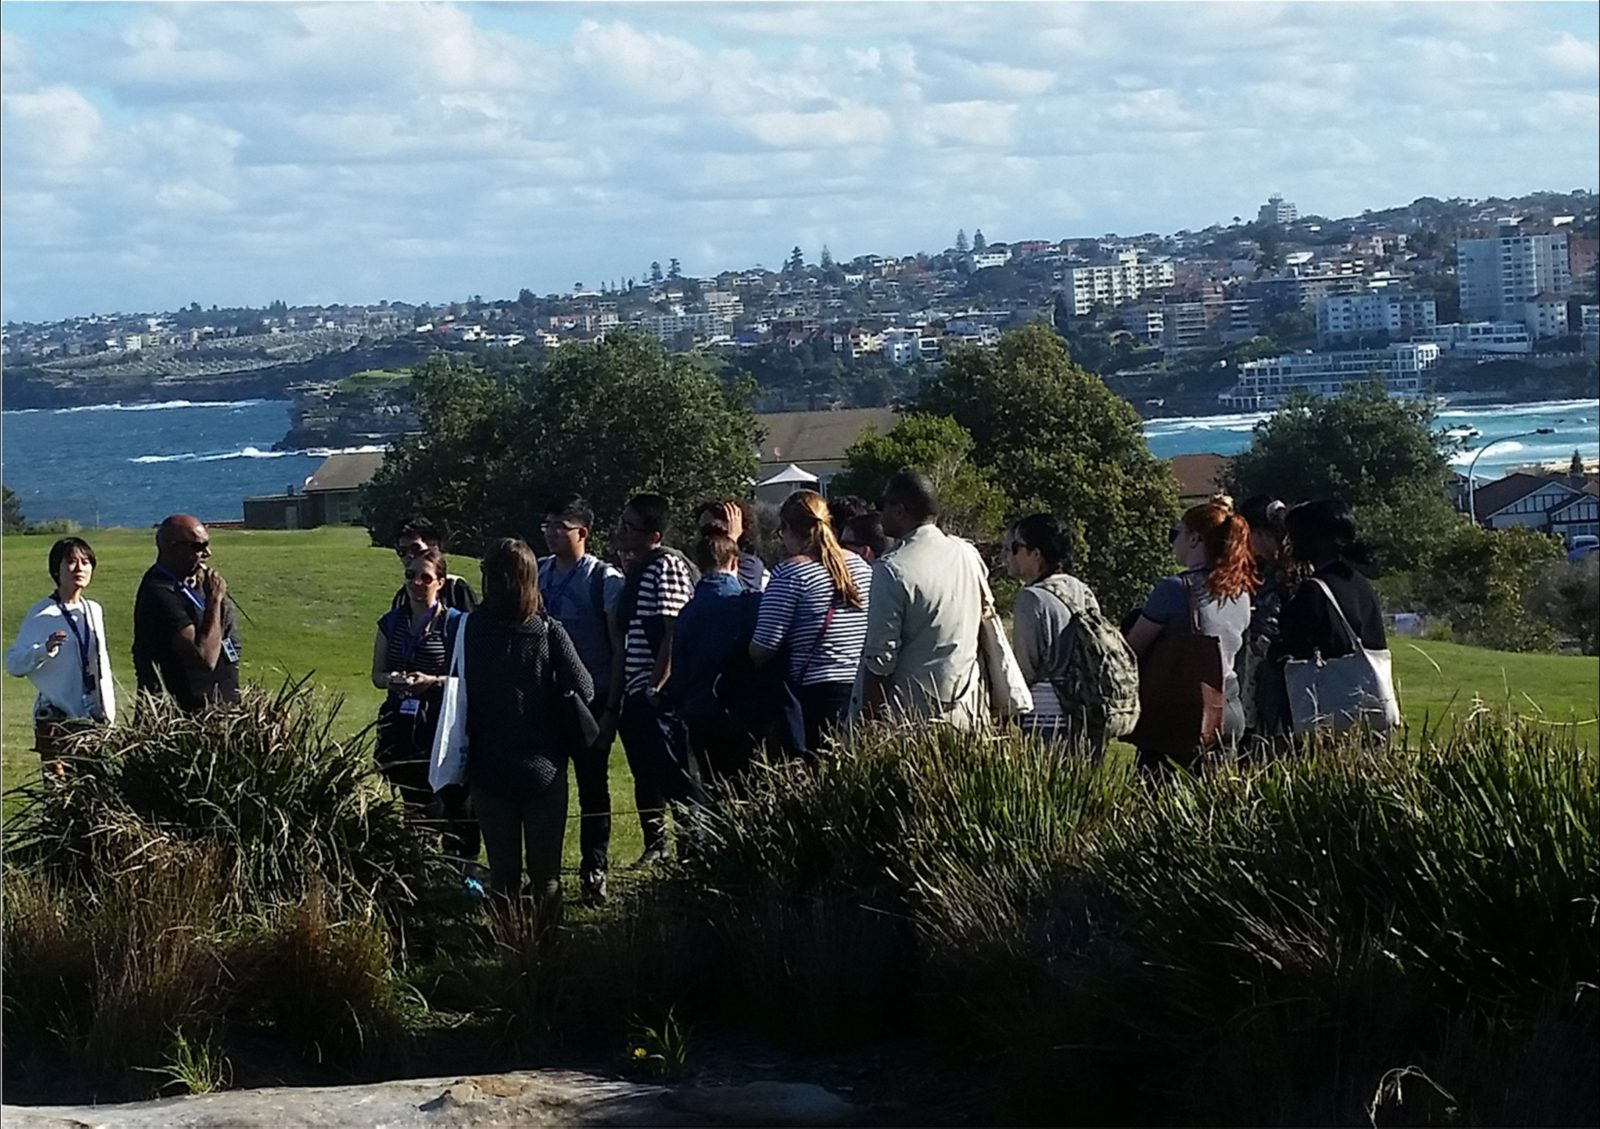 Walangari-explains-Bondi's-Aboriginal-history-during-his-unique-Bondi-Aboriginal-Walking-Tours